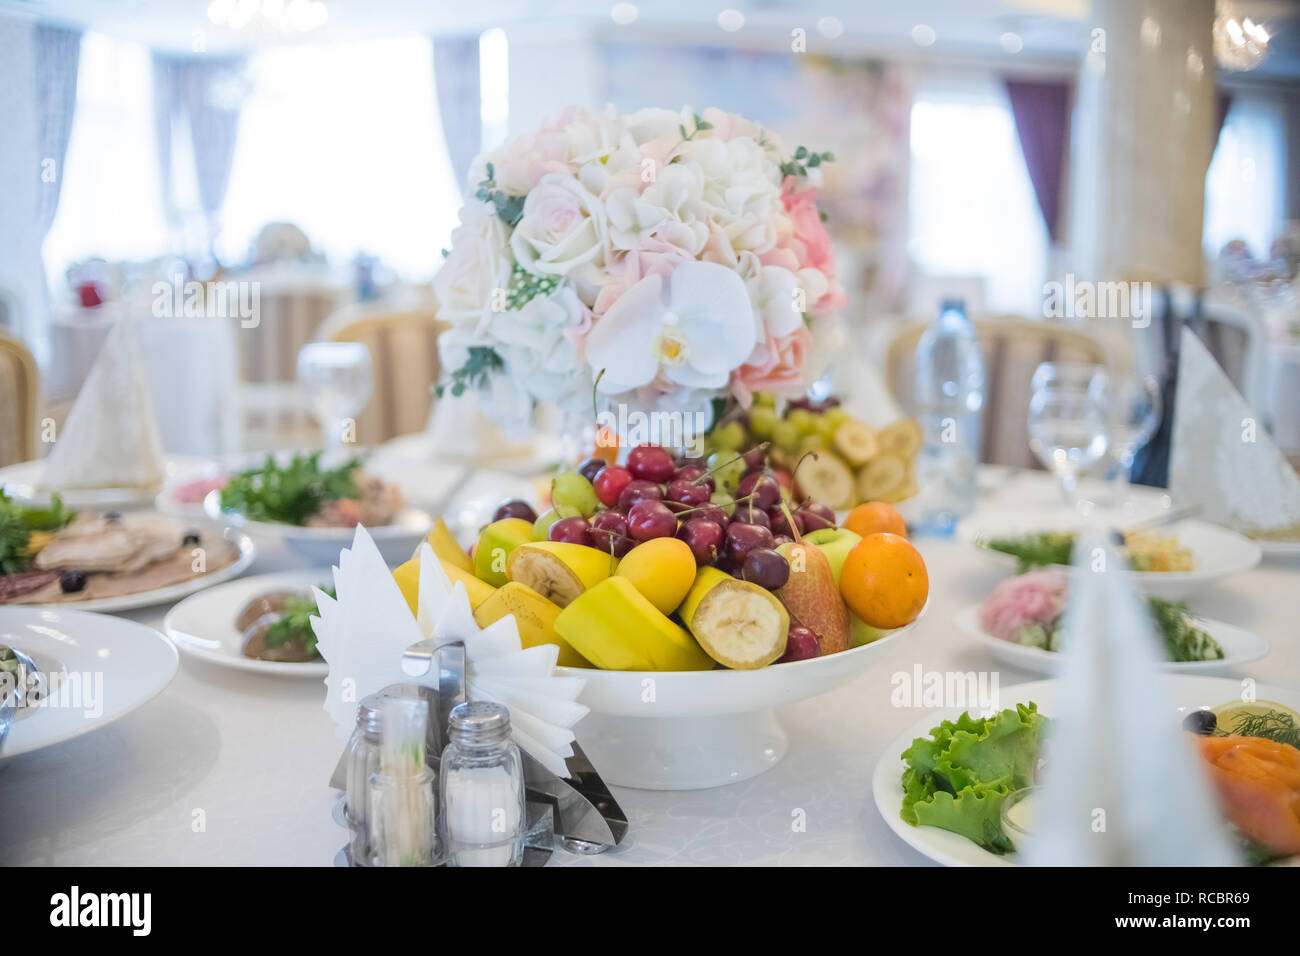 Festive Table Setting Wedding Decor Table Setting In Fine Art Style Table Decor Catering Wedding Ceremony Birthday Wedding Celebration At A Restaurant Beautiful Small Bouquets On A Table Selected Focus Stock Photo